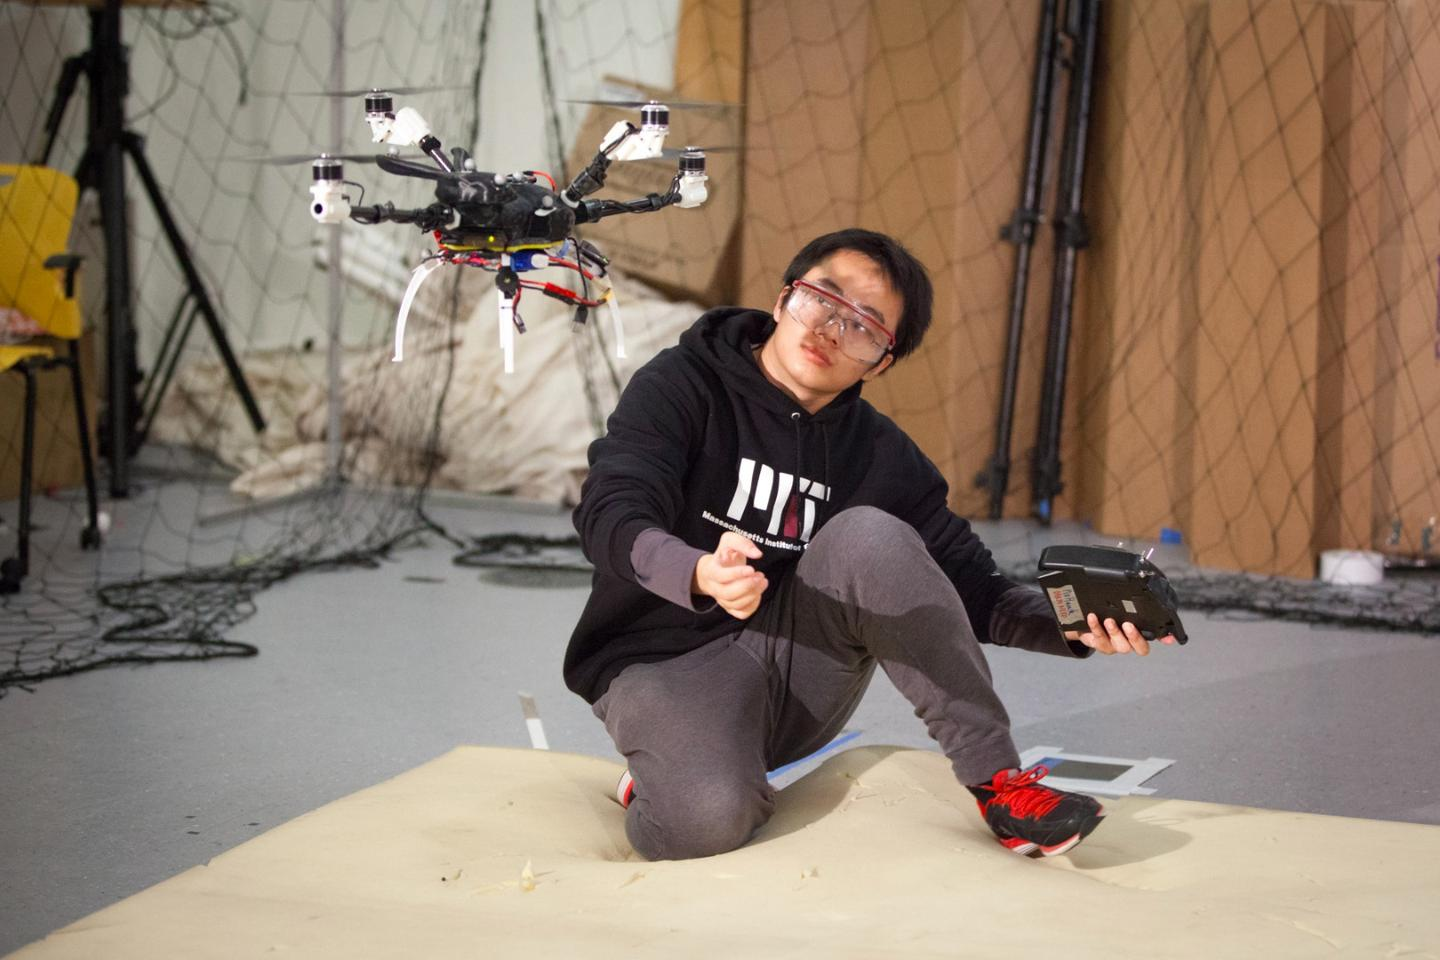 PhD student Tao Du helps one of the team's multicopters take off